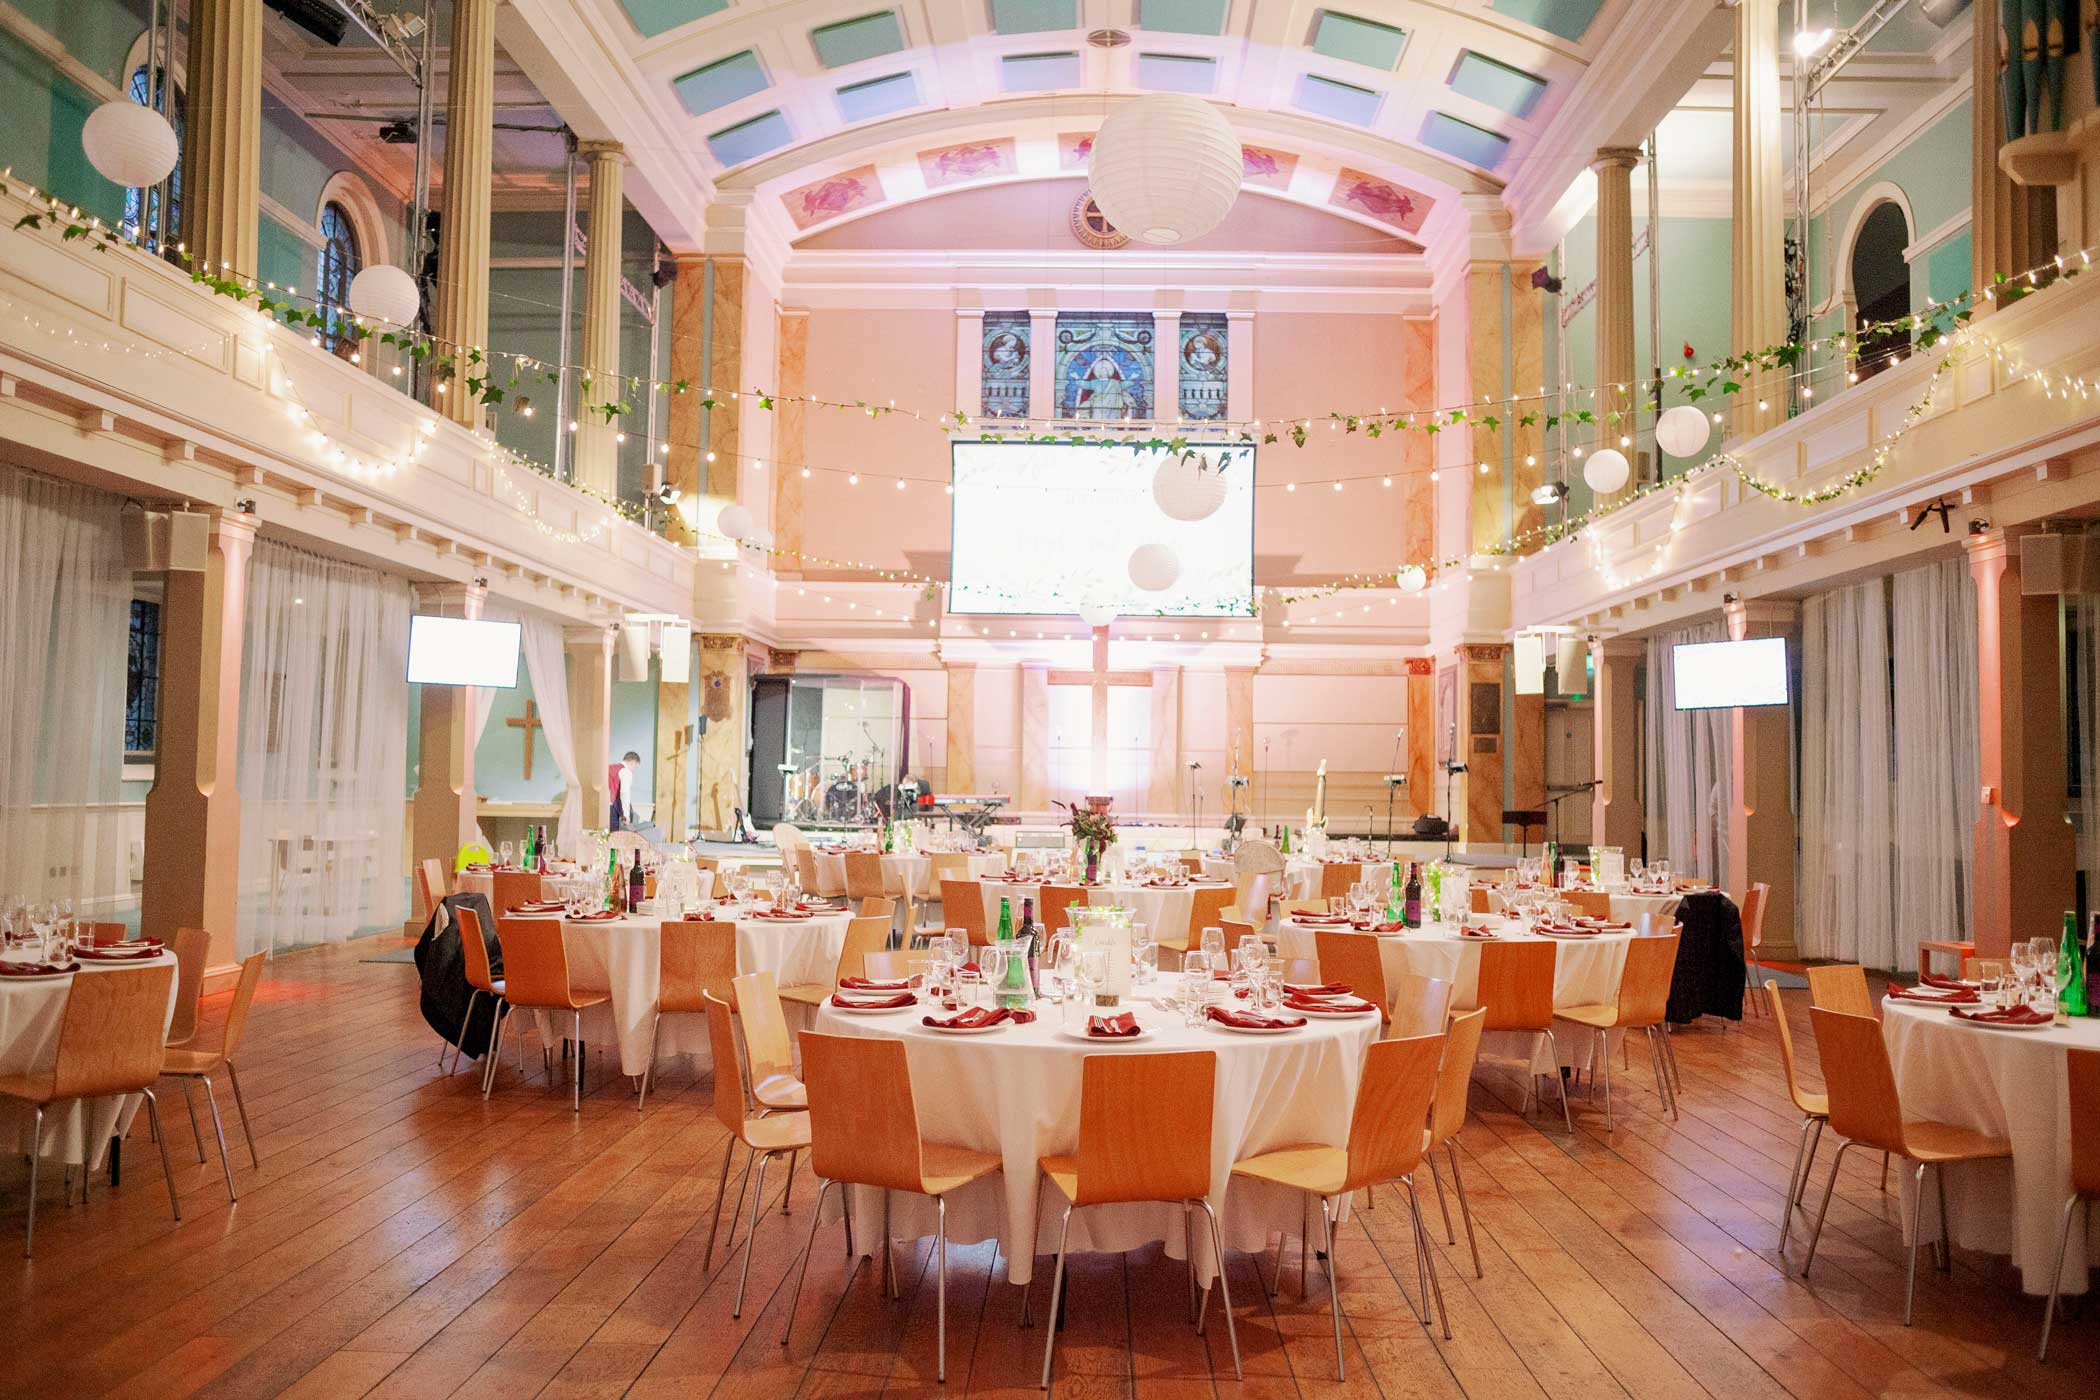 cabaret style dining at a wedding with red event lighting, fairy lights and foliage.